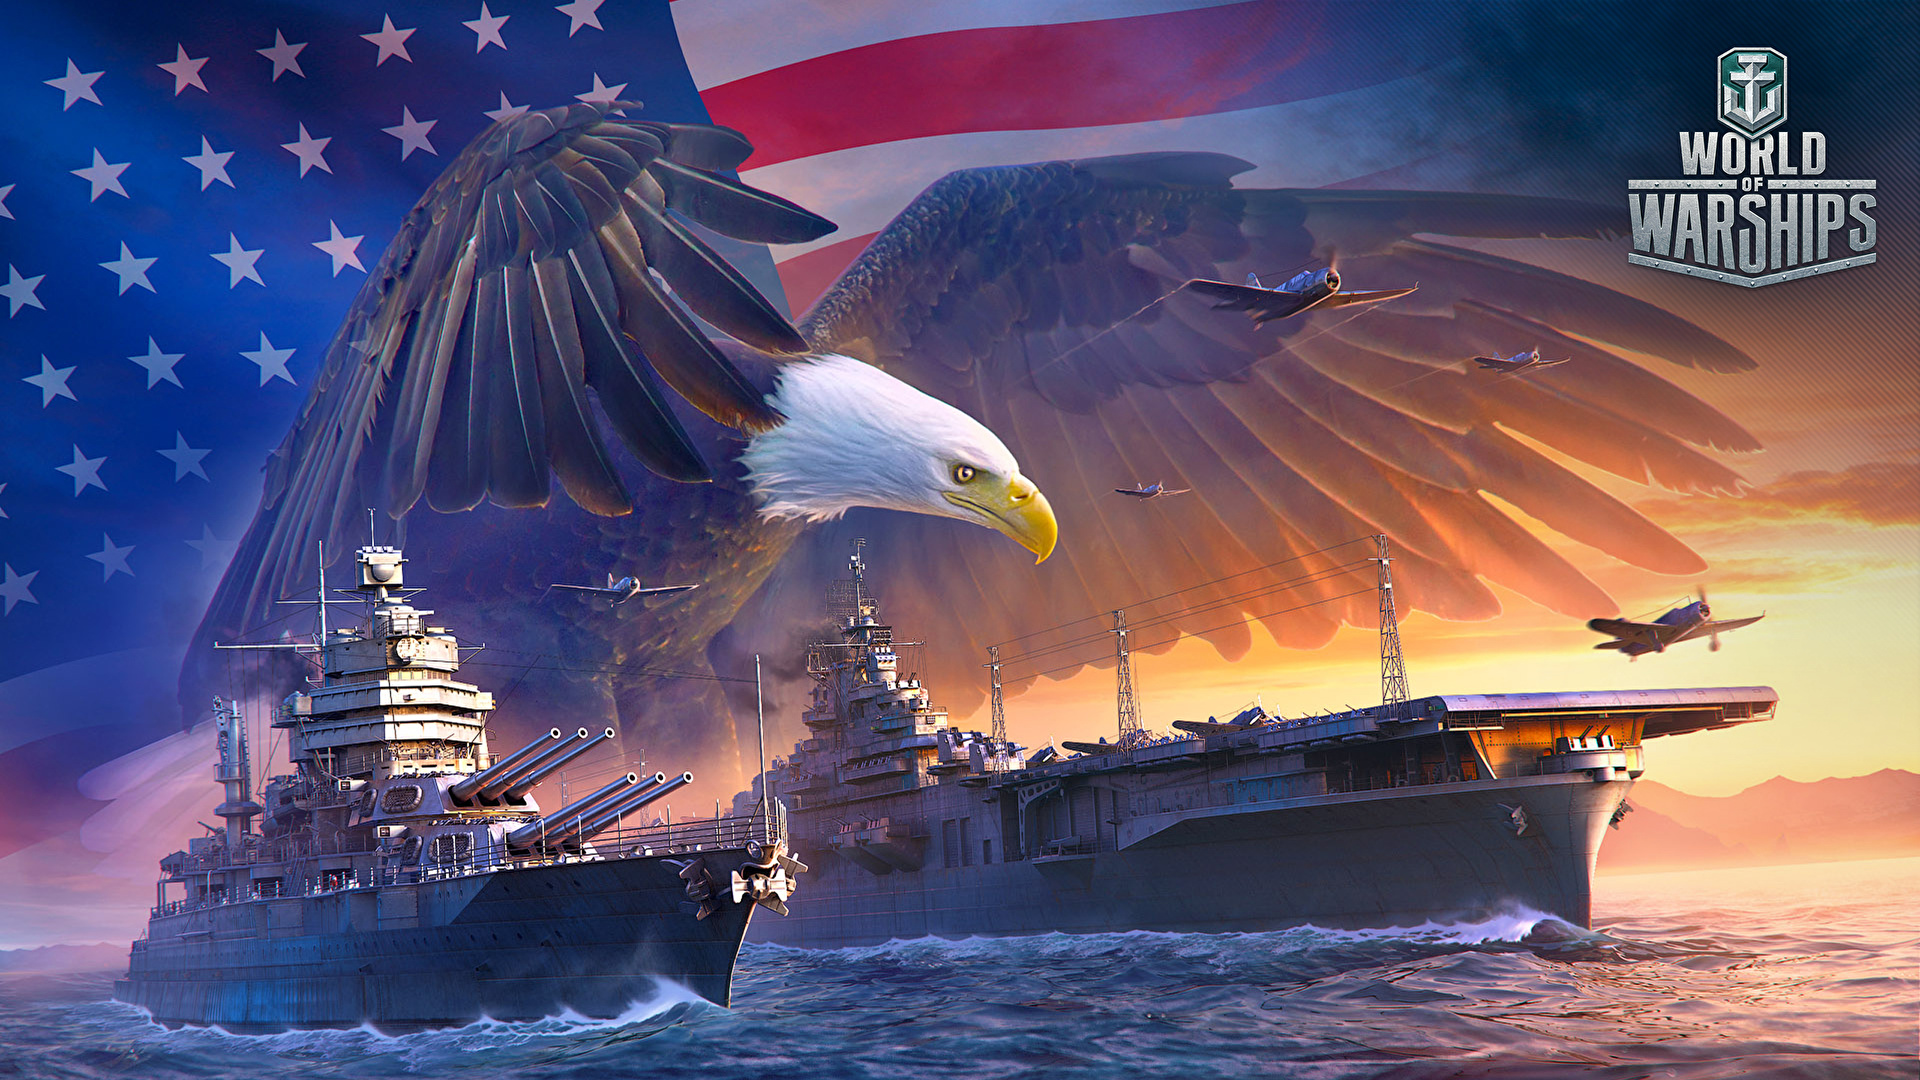 Wallpaper World Of Warship Eagle Us Games Ships Army 1920x1080